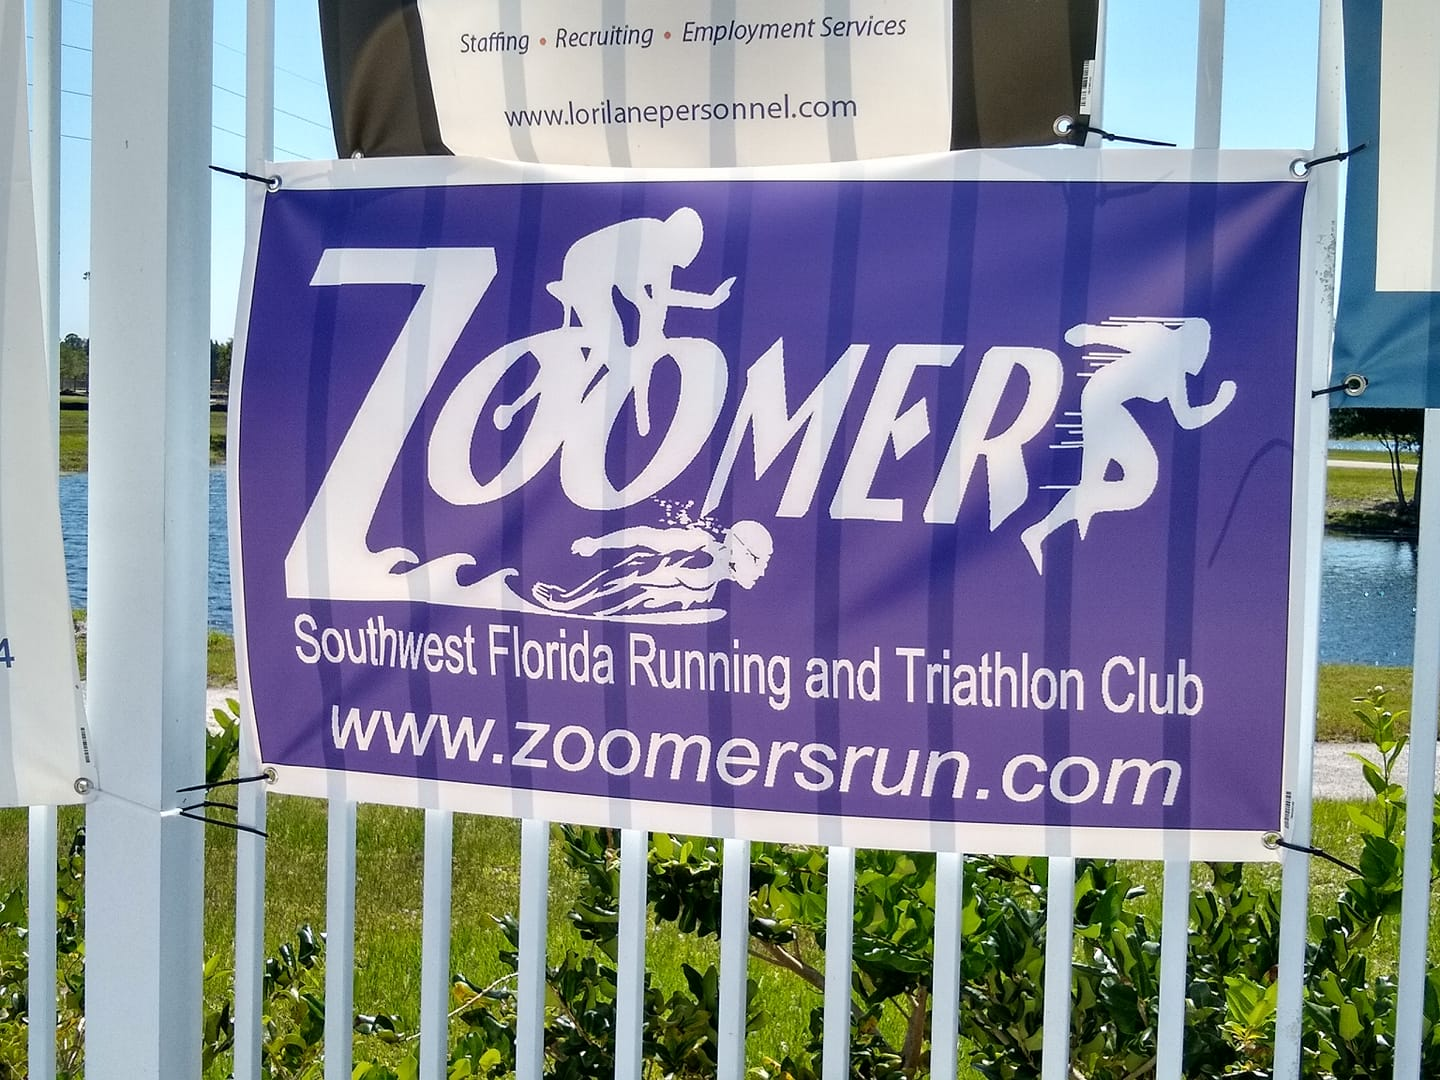 zoomers-banner